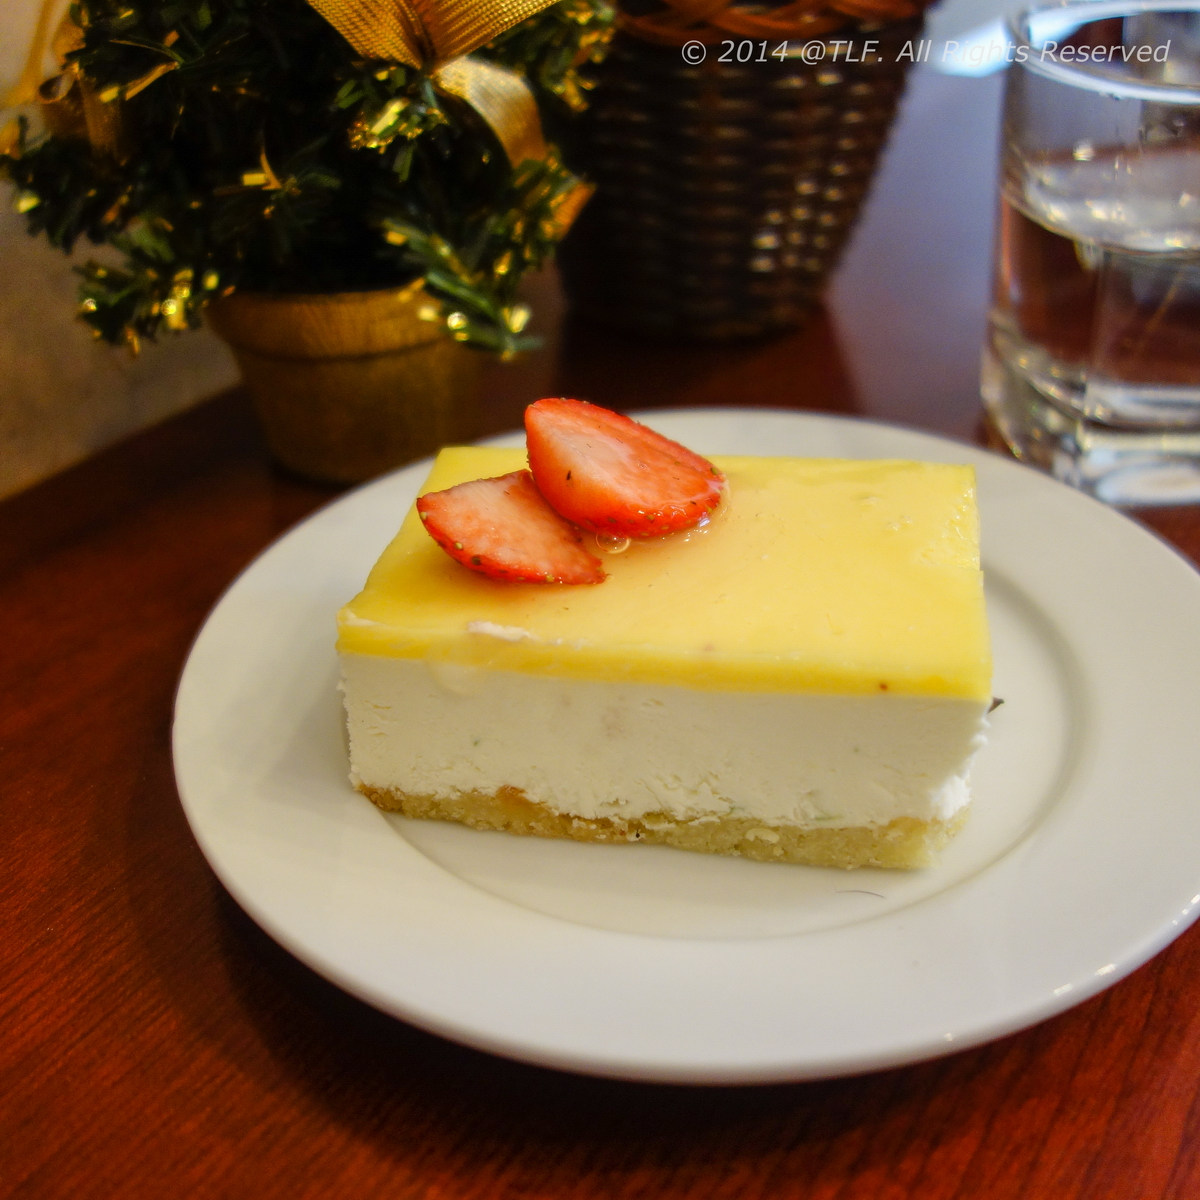 [Hanoi] La Patisserie Chez Moi [Part 2] – Tho Loves Food